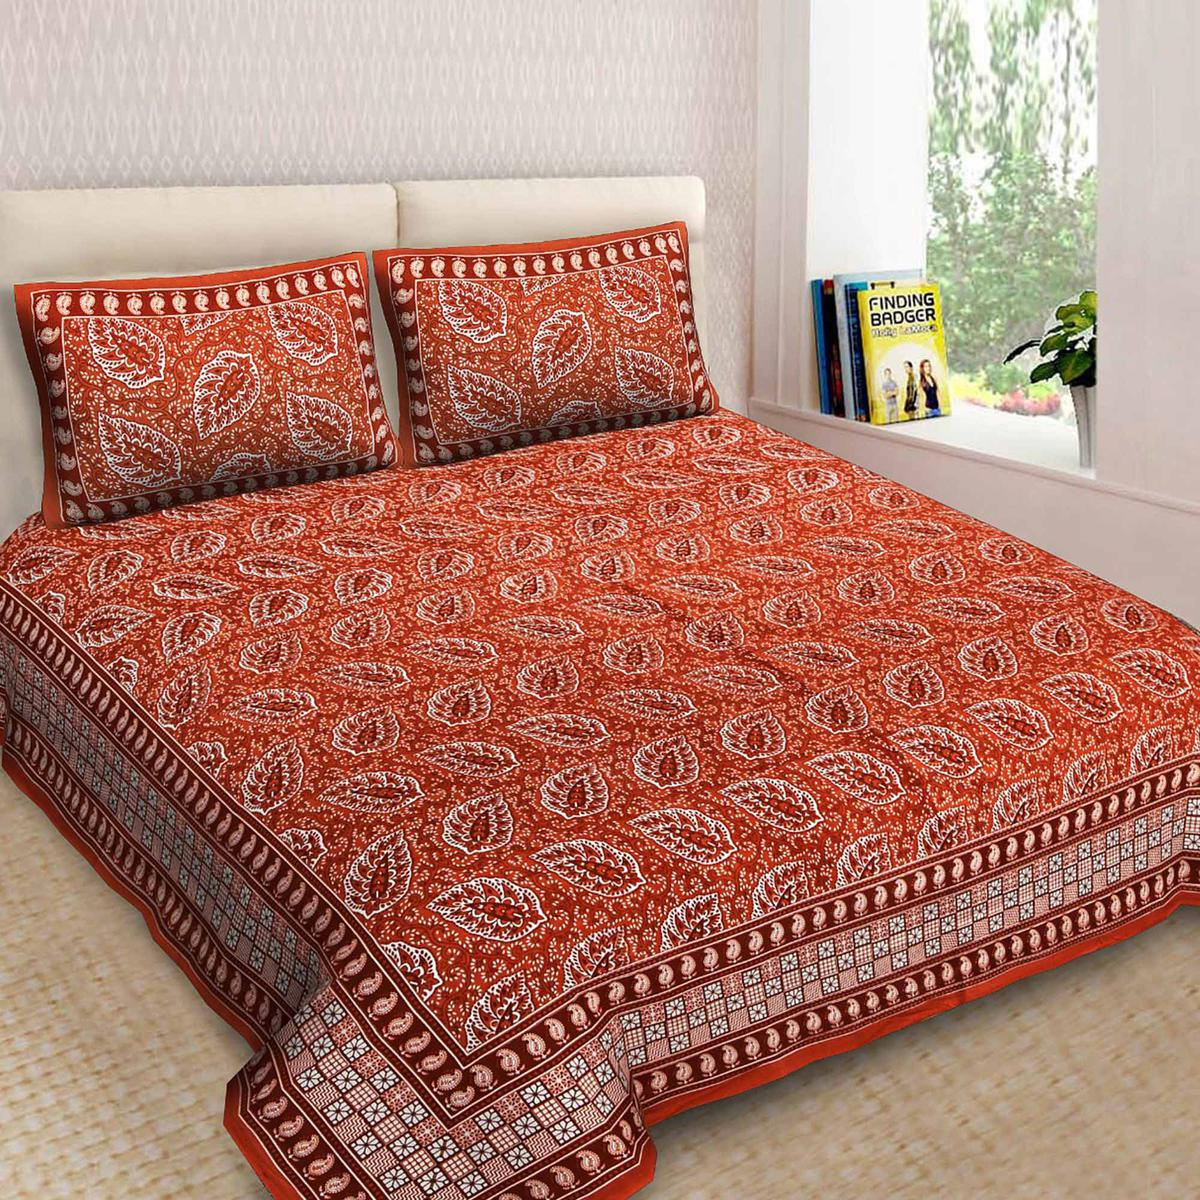 Energatic Orange Color King Size Cotton Bedsheet Comes With 2 Pillow Cover